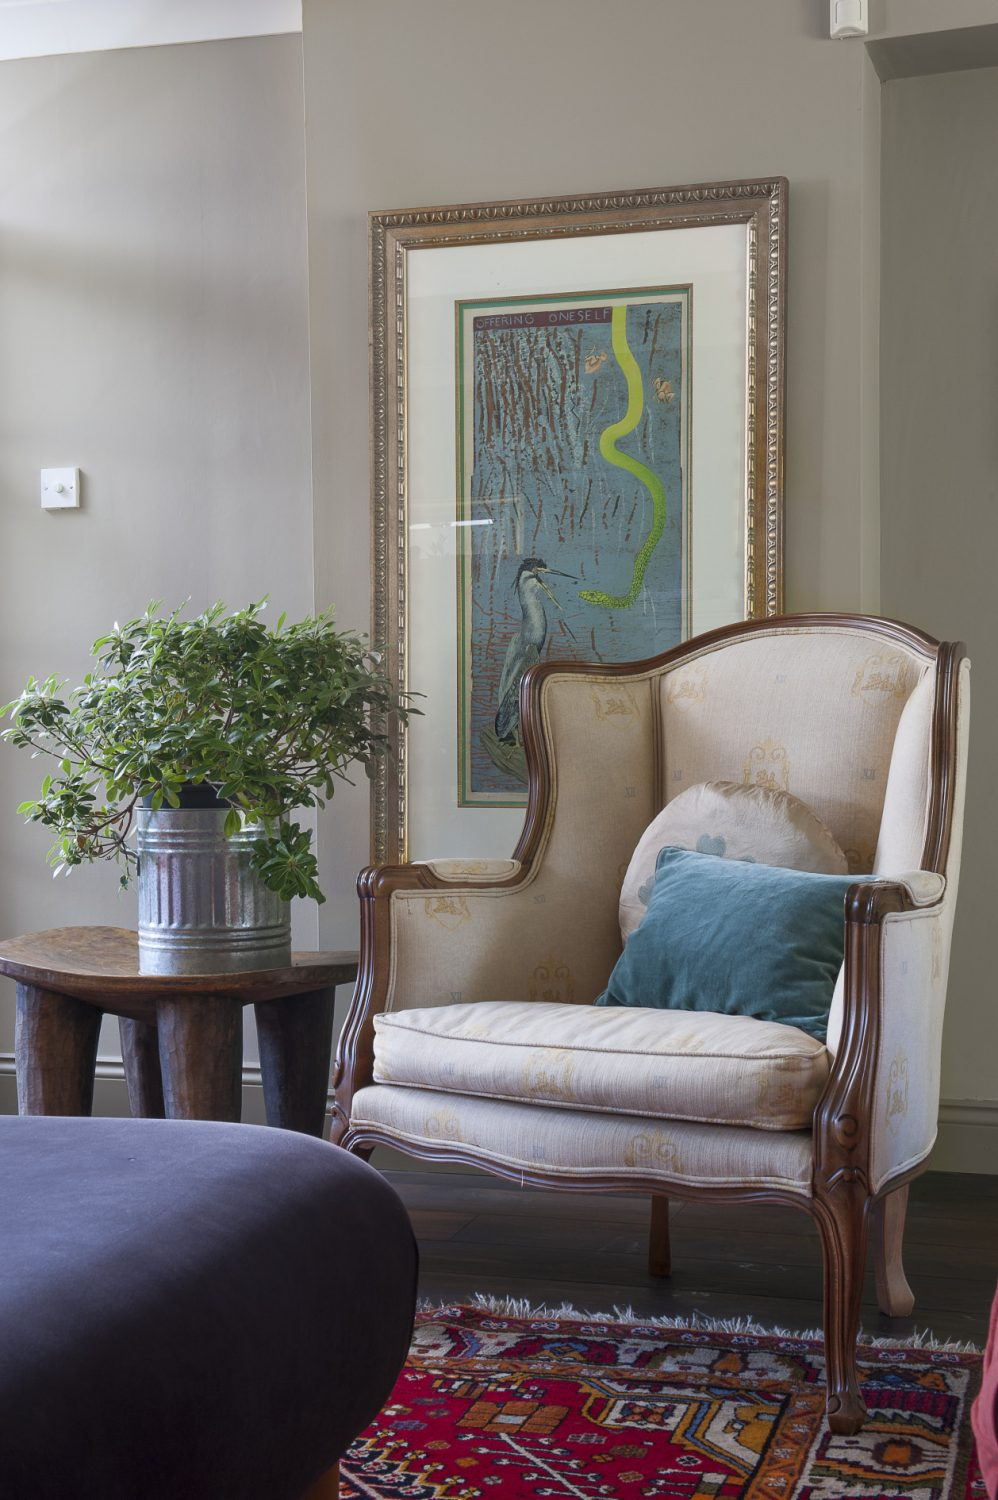 Favourite artworks are beautifully framed throughout the house